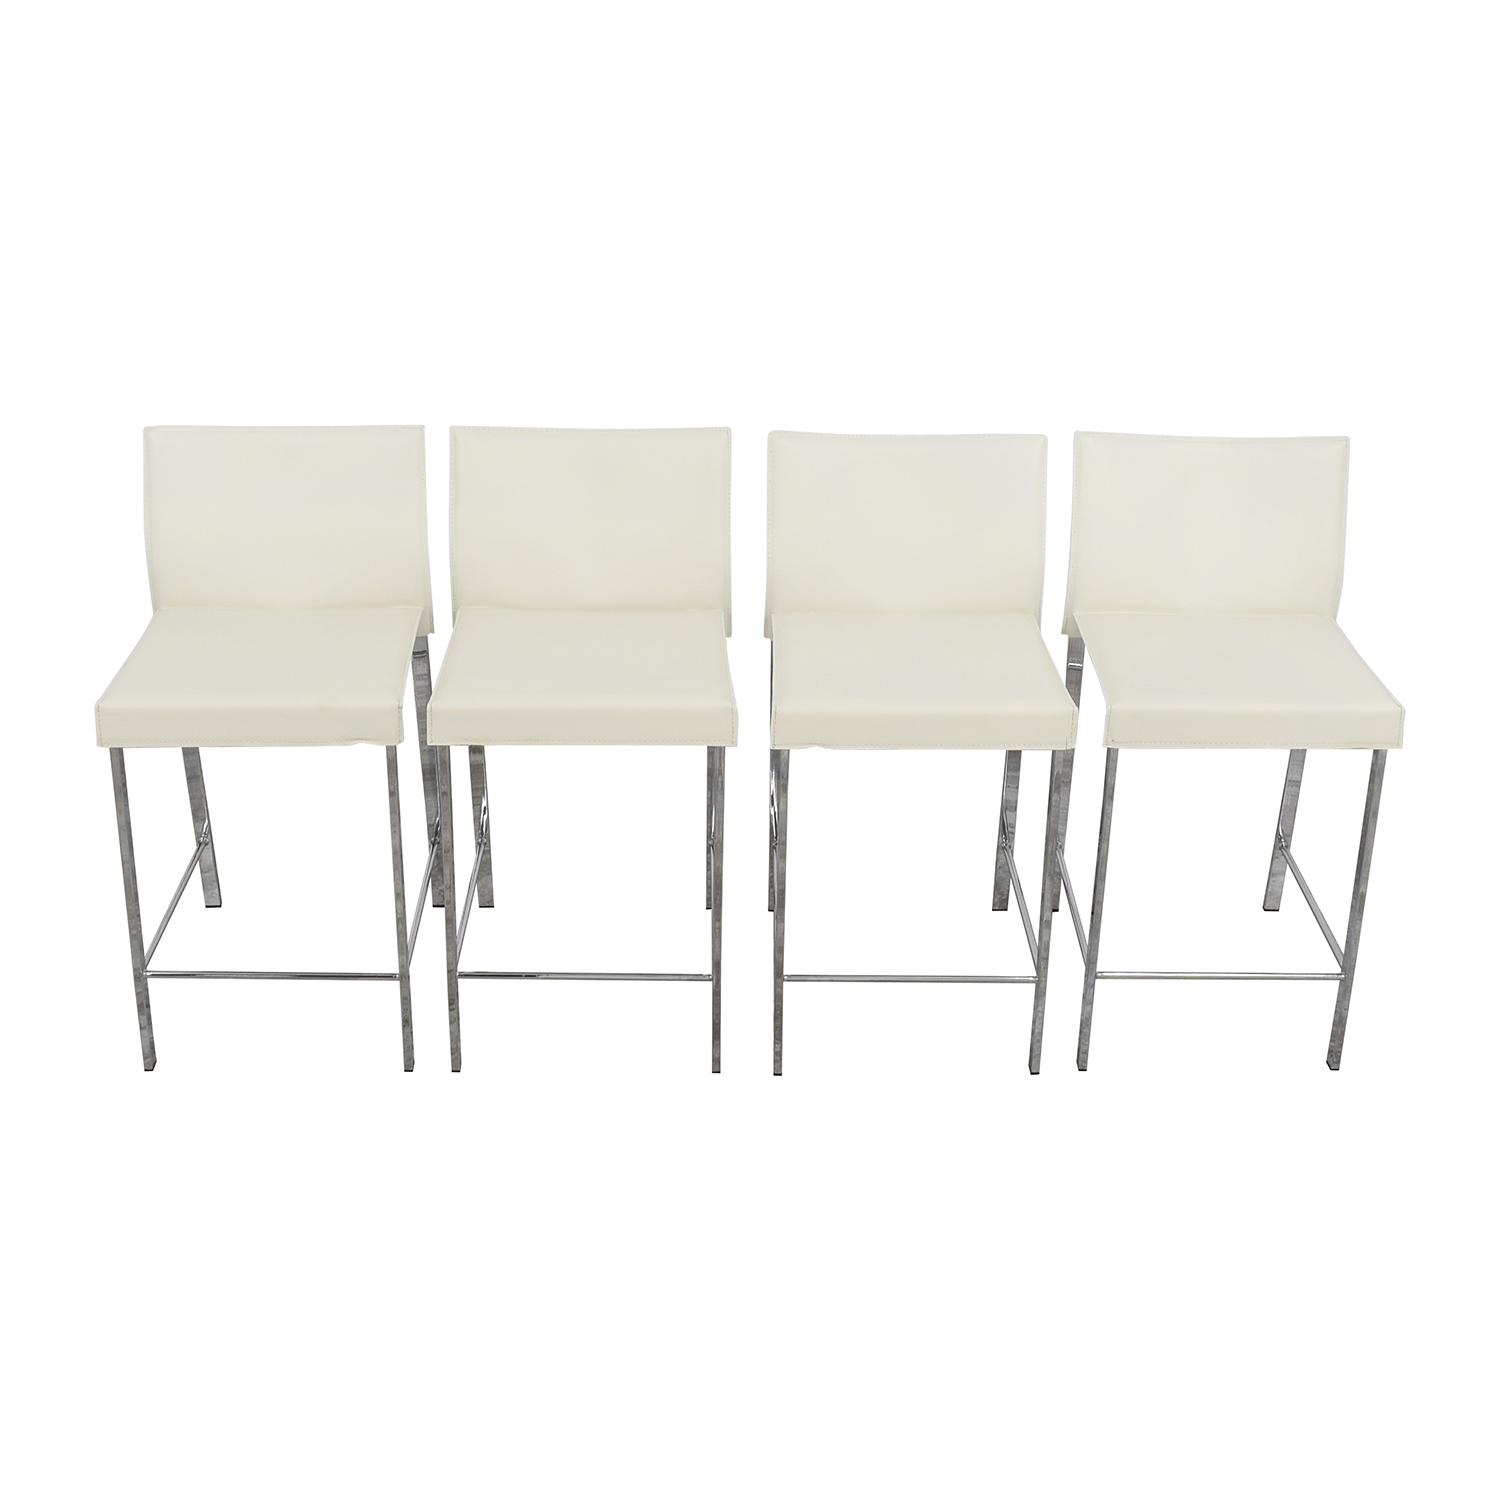 InMod InMod Riley-C Counter White Stool Stools